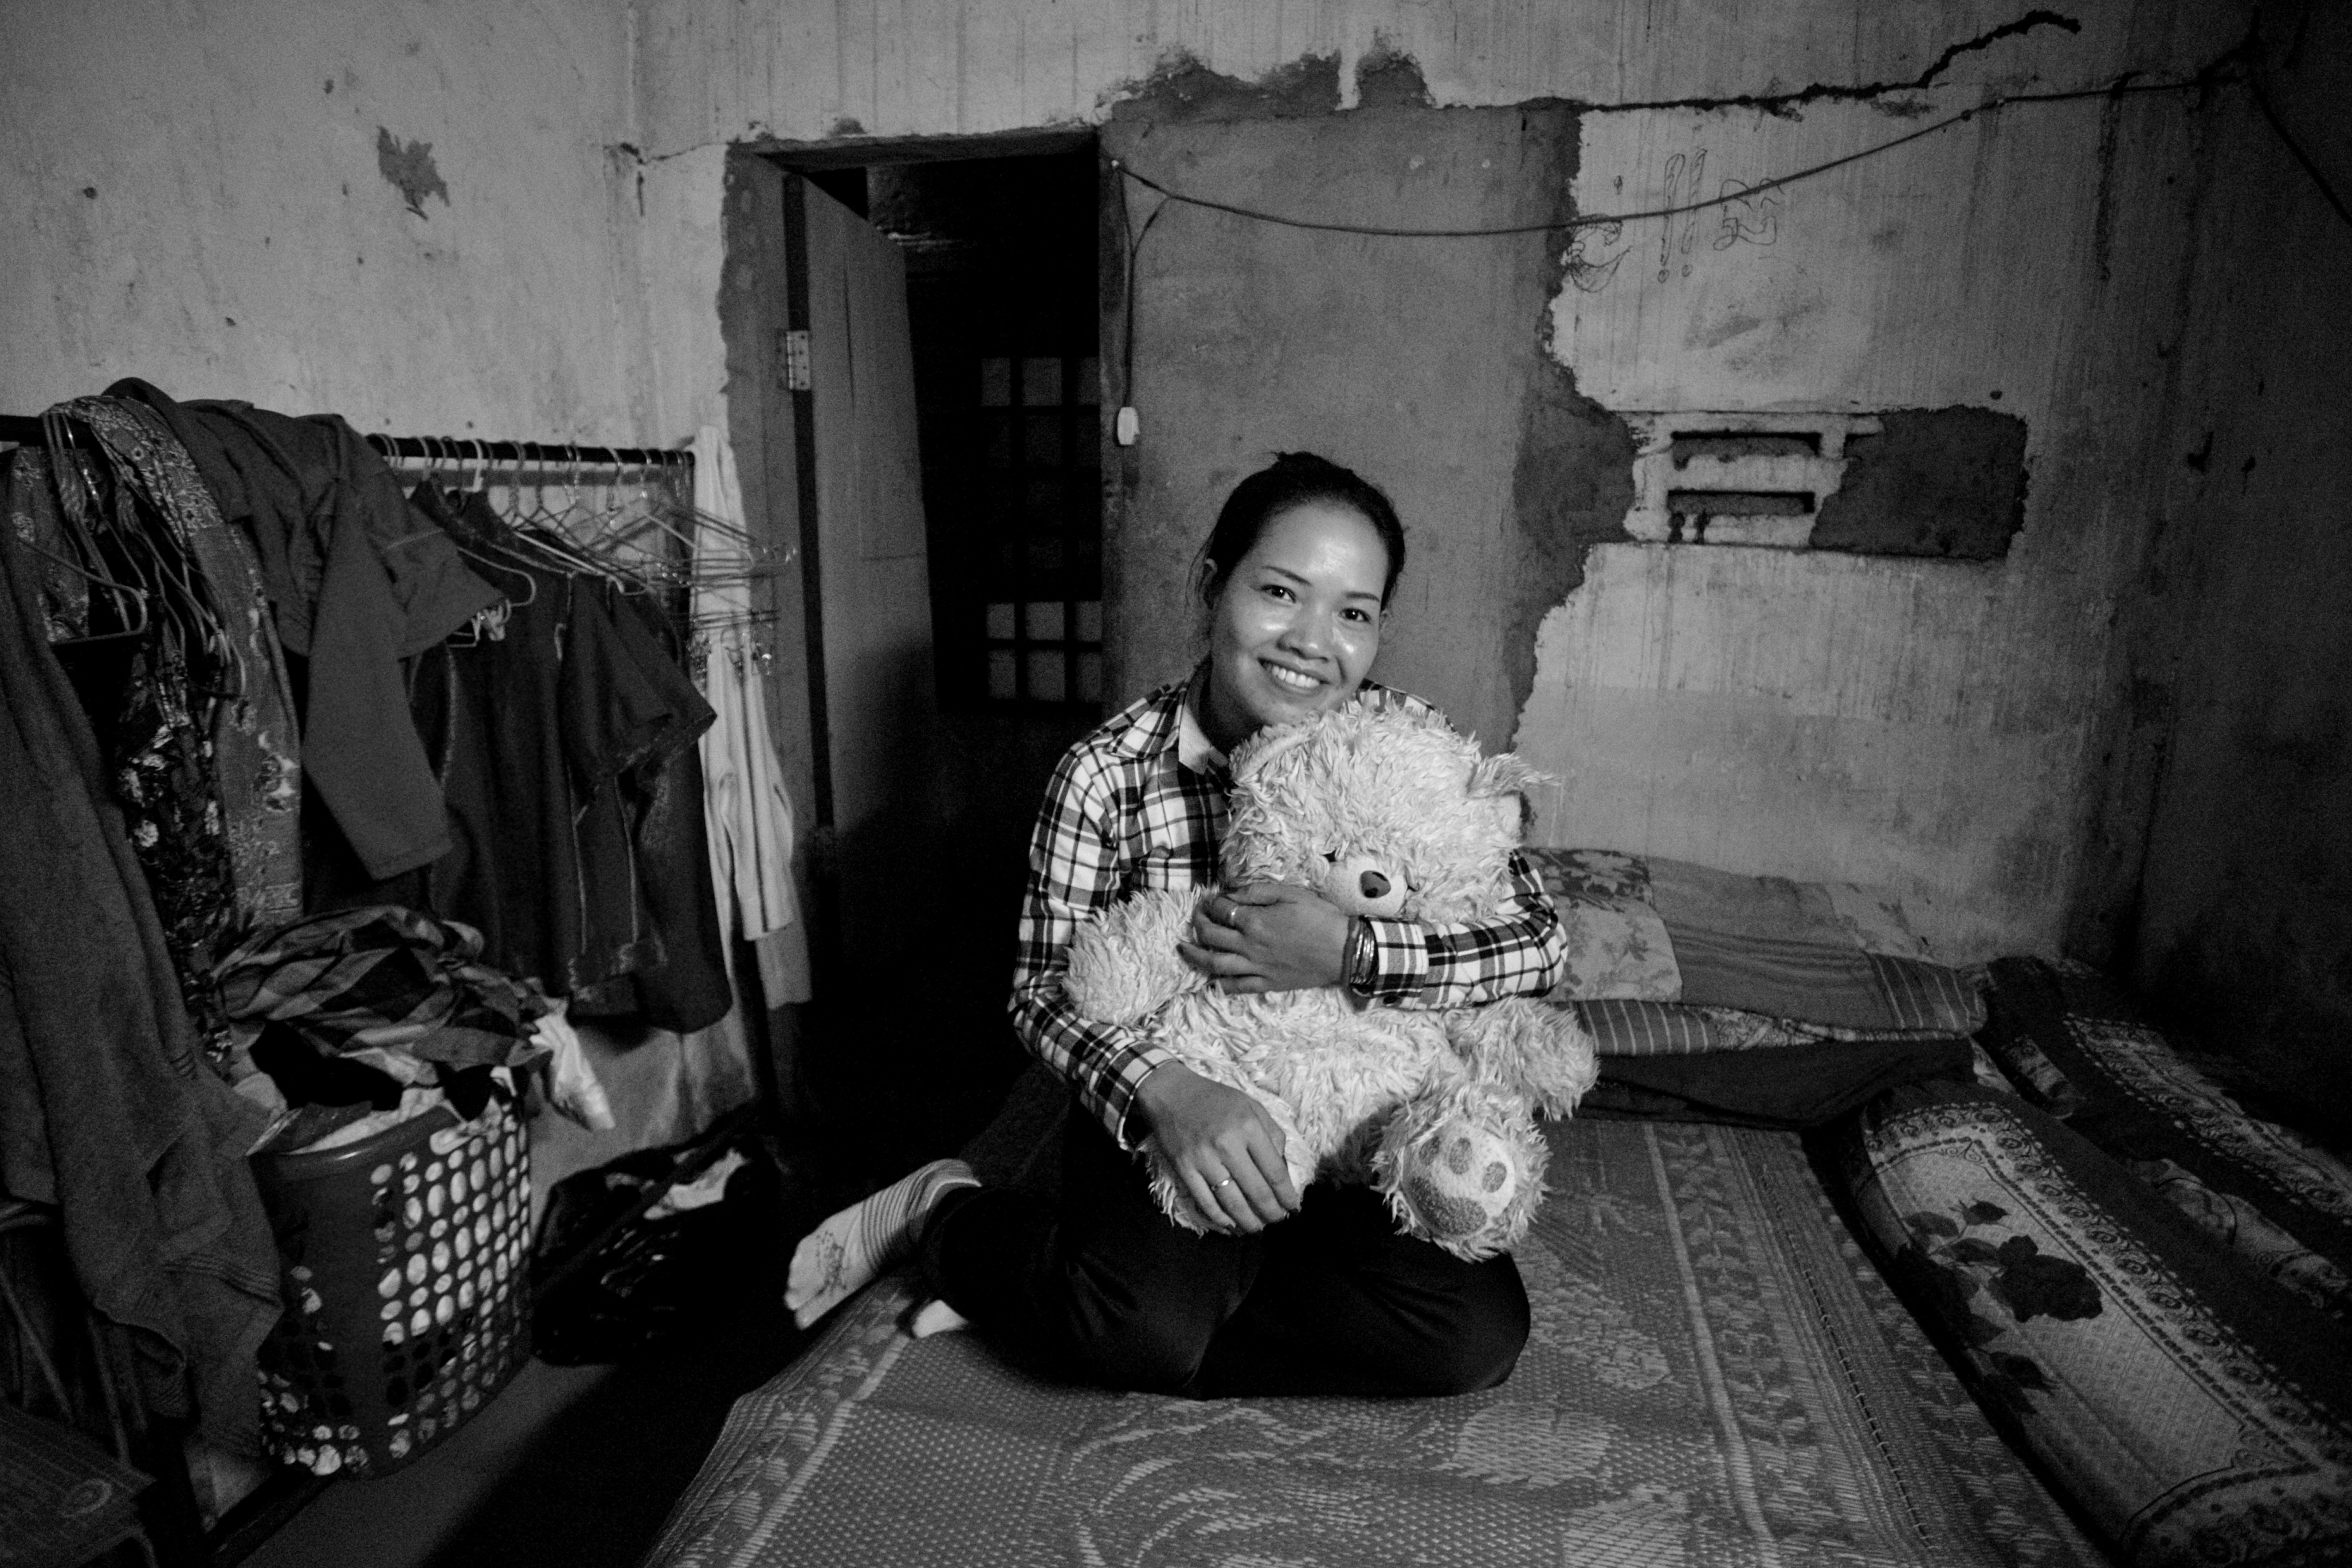 Tep Sareoung, a Cambodian laborer, poses on the floor while holding a white, fluffy dog